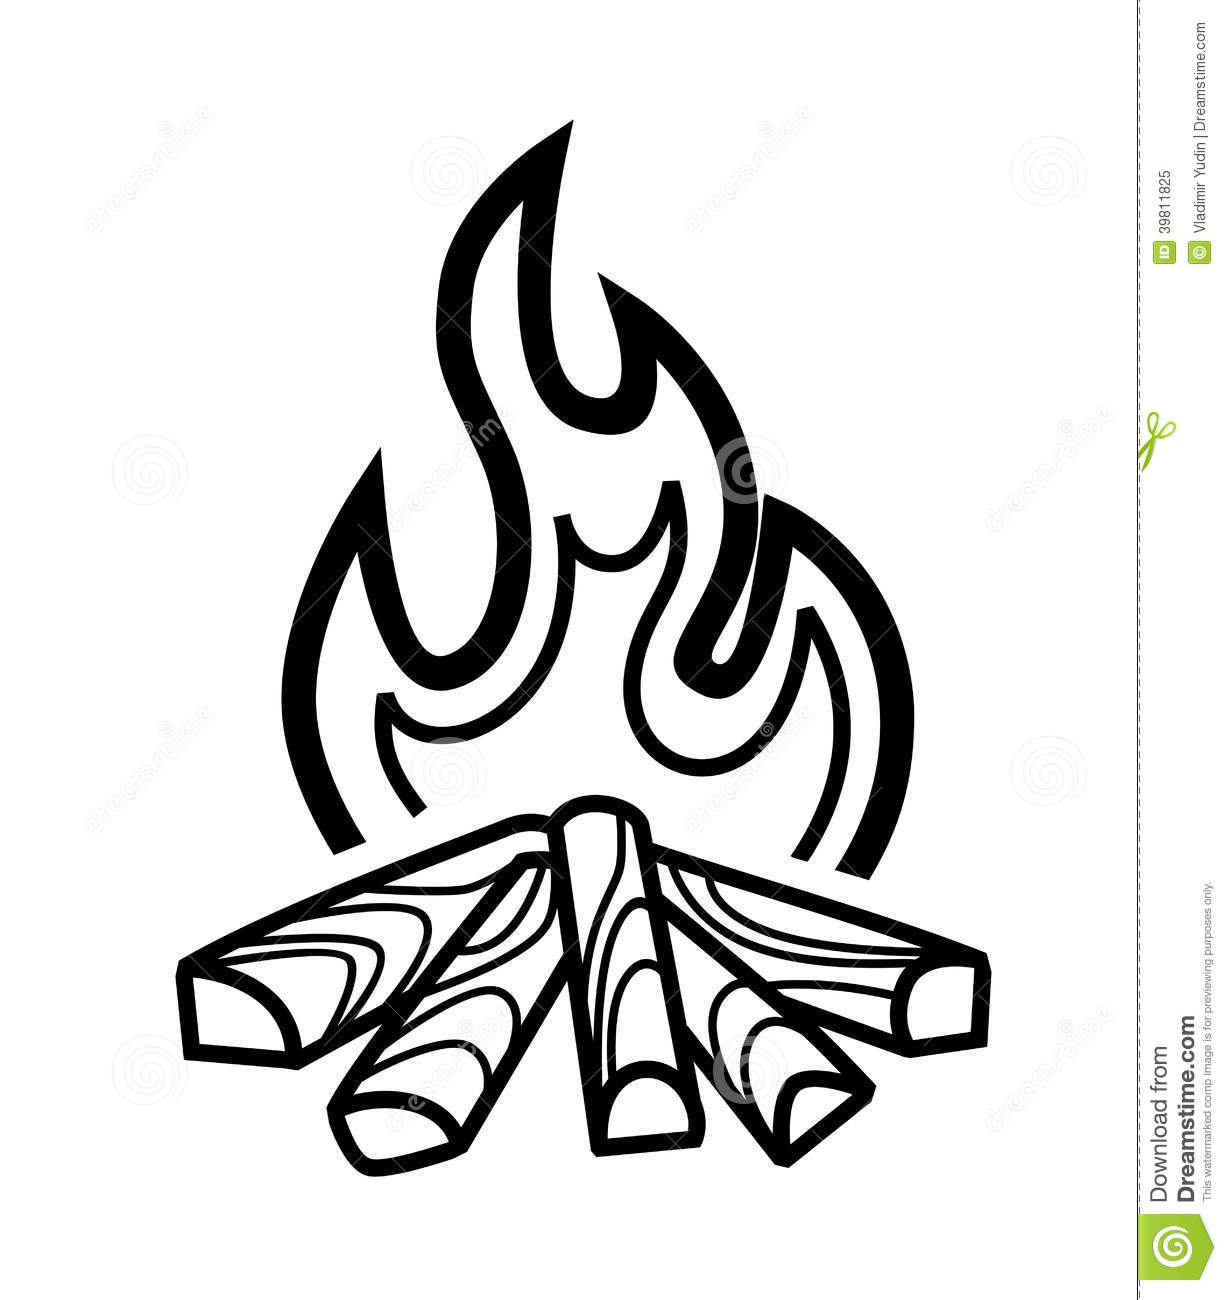 Campfire clipart black and white. Station